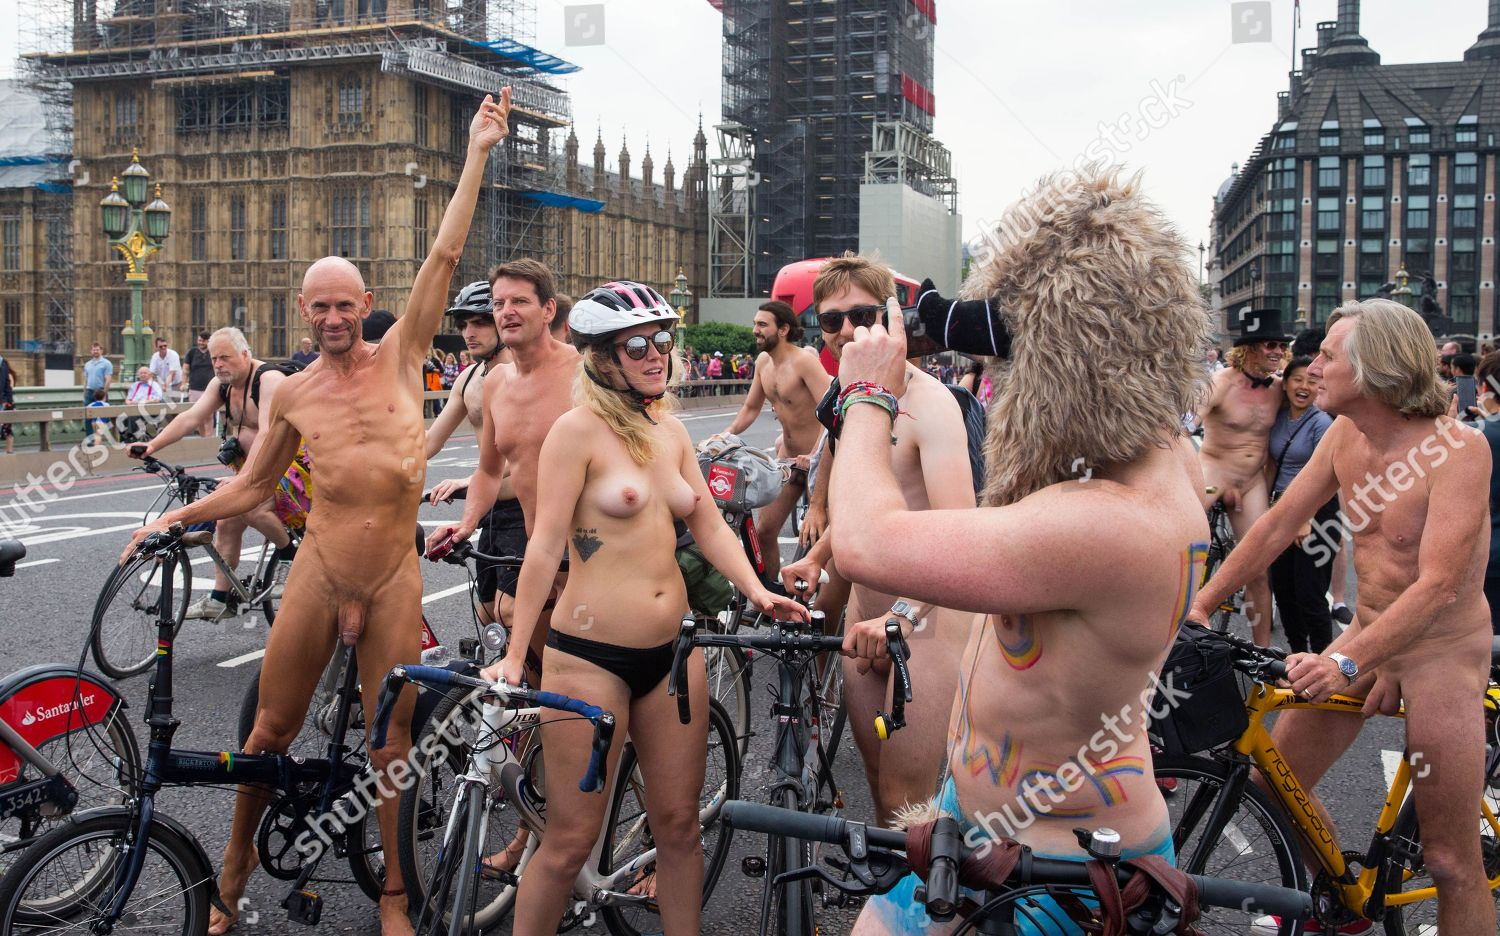 Hundreds Cyclists Ride Through Streets London Naked -5630